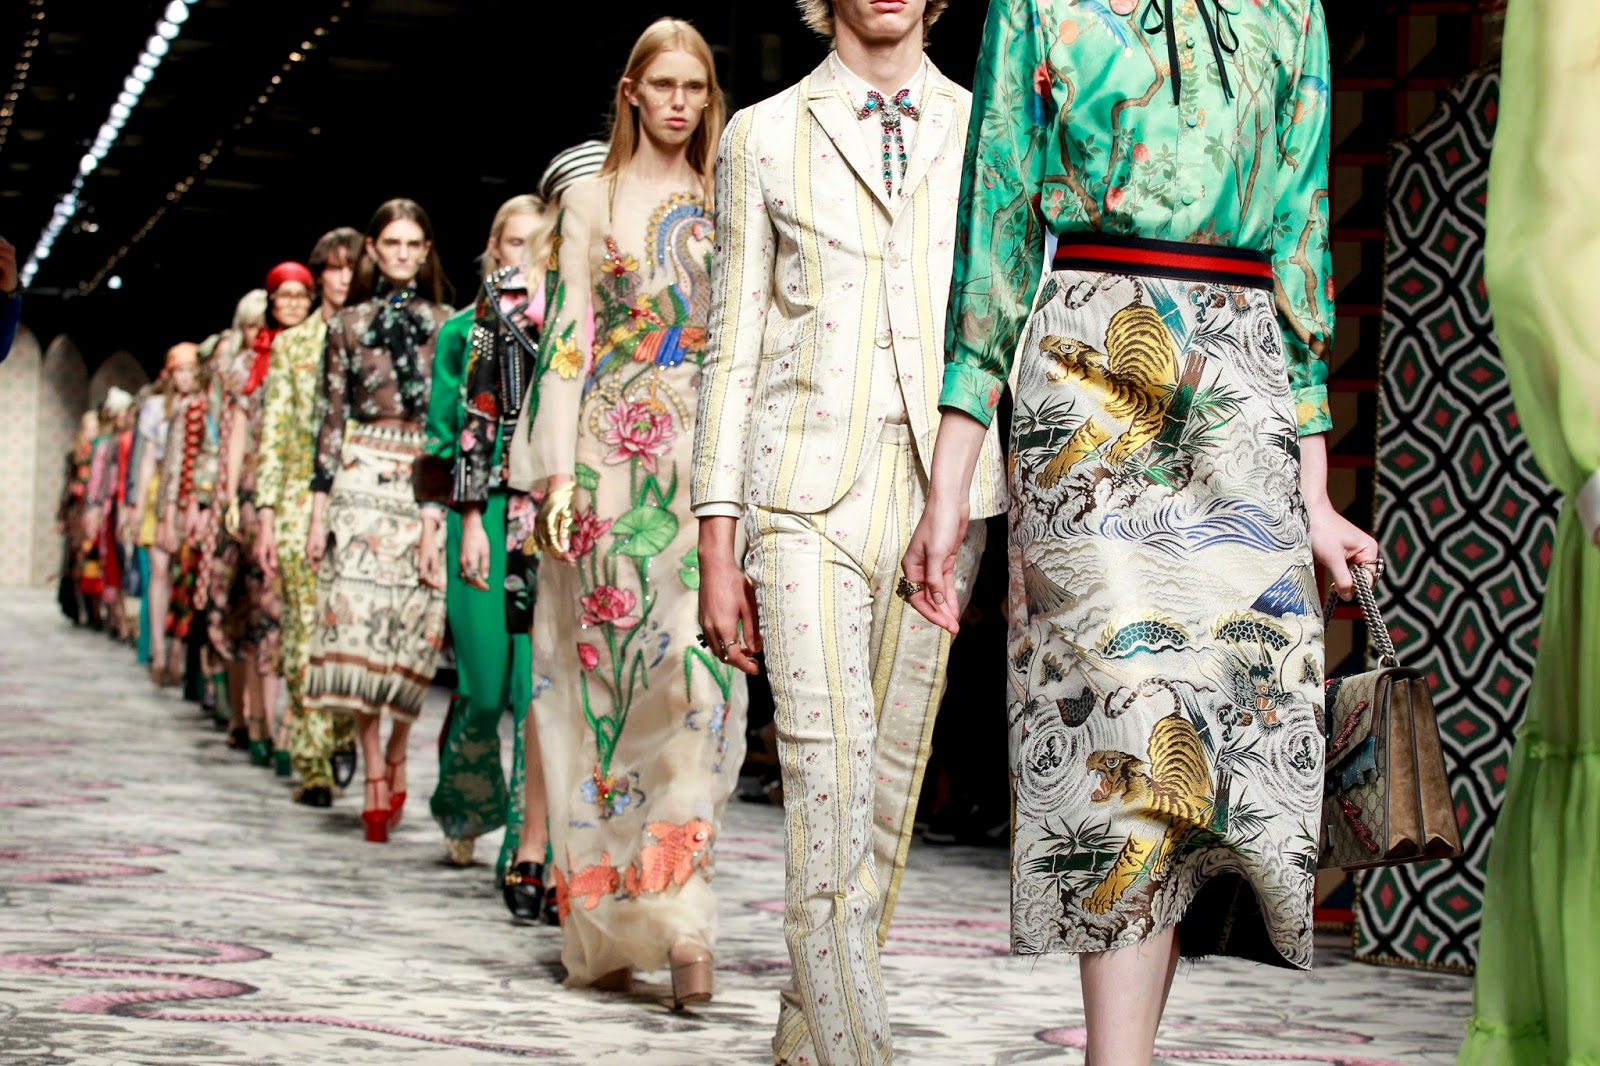 Gucci have announced their Resort 2018 show will take place in Florence, Italy.